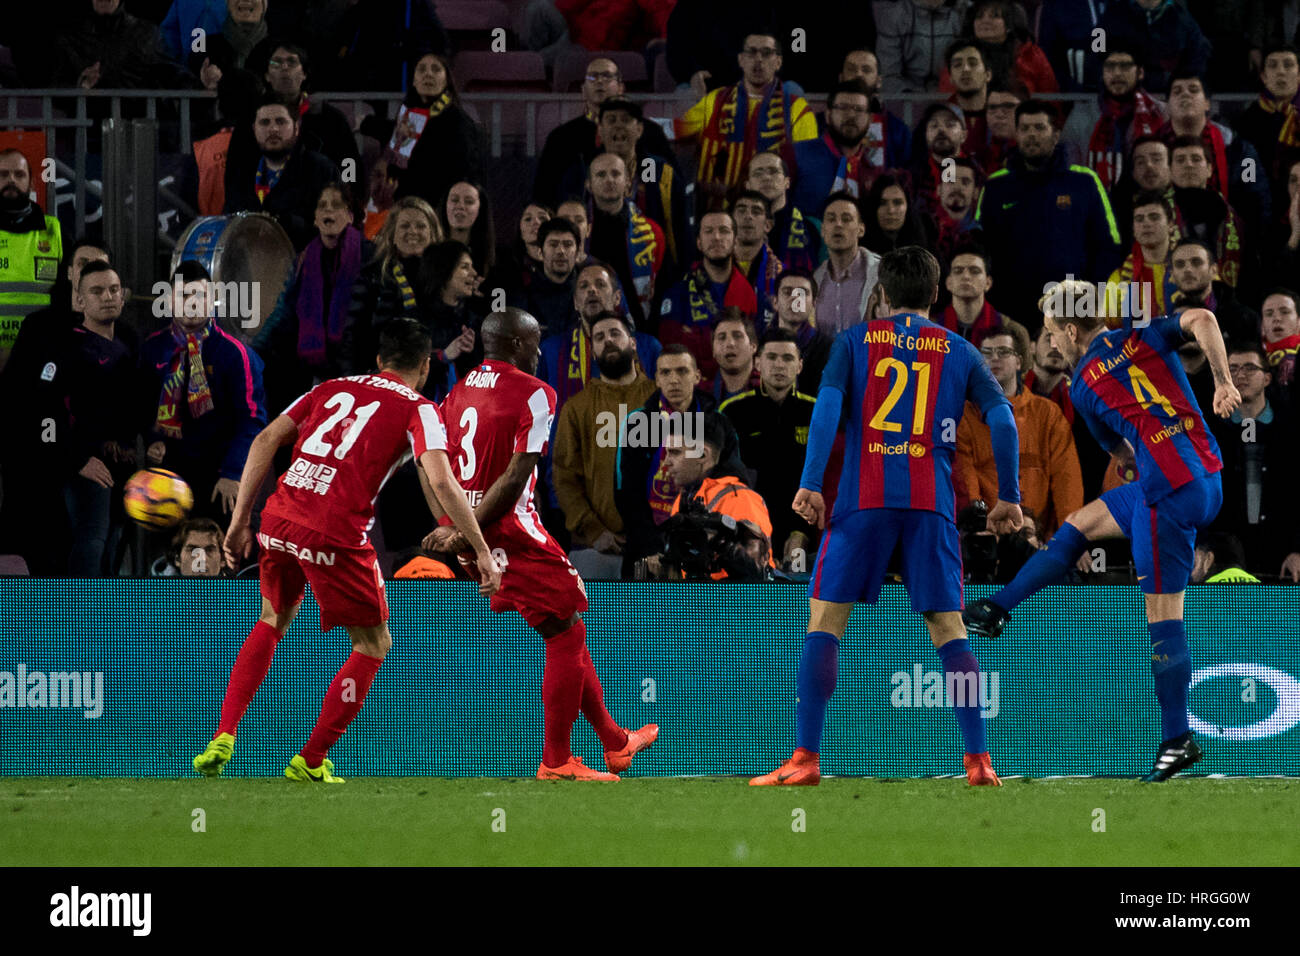 Camp Not Stadium, Barcelona, Spain. 1st March, 2017. Rakitic's goal at Camp Nou Stadium, Barcelona, Spain. Credit: - Stock Image